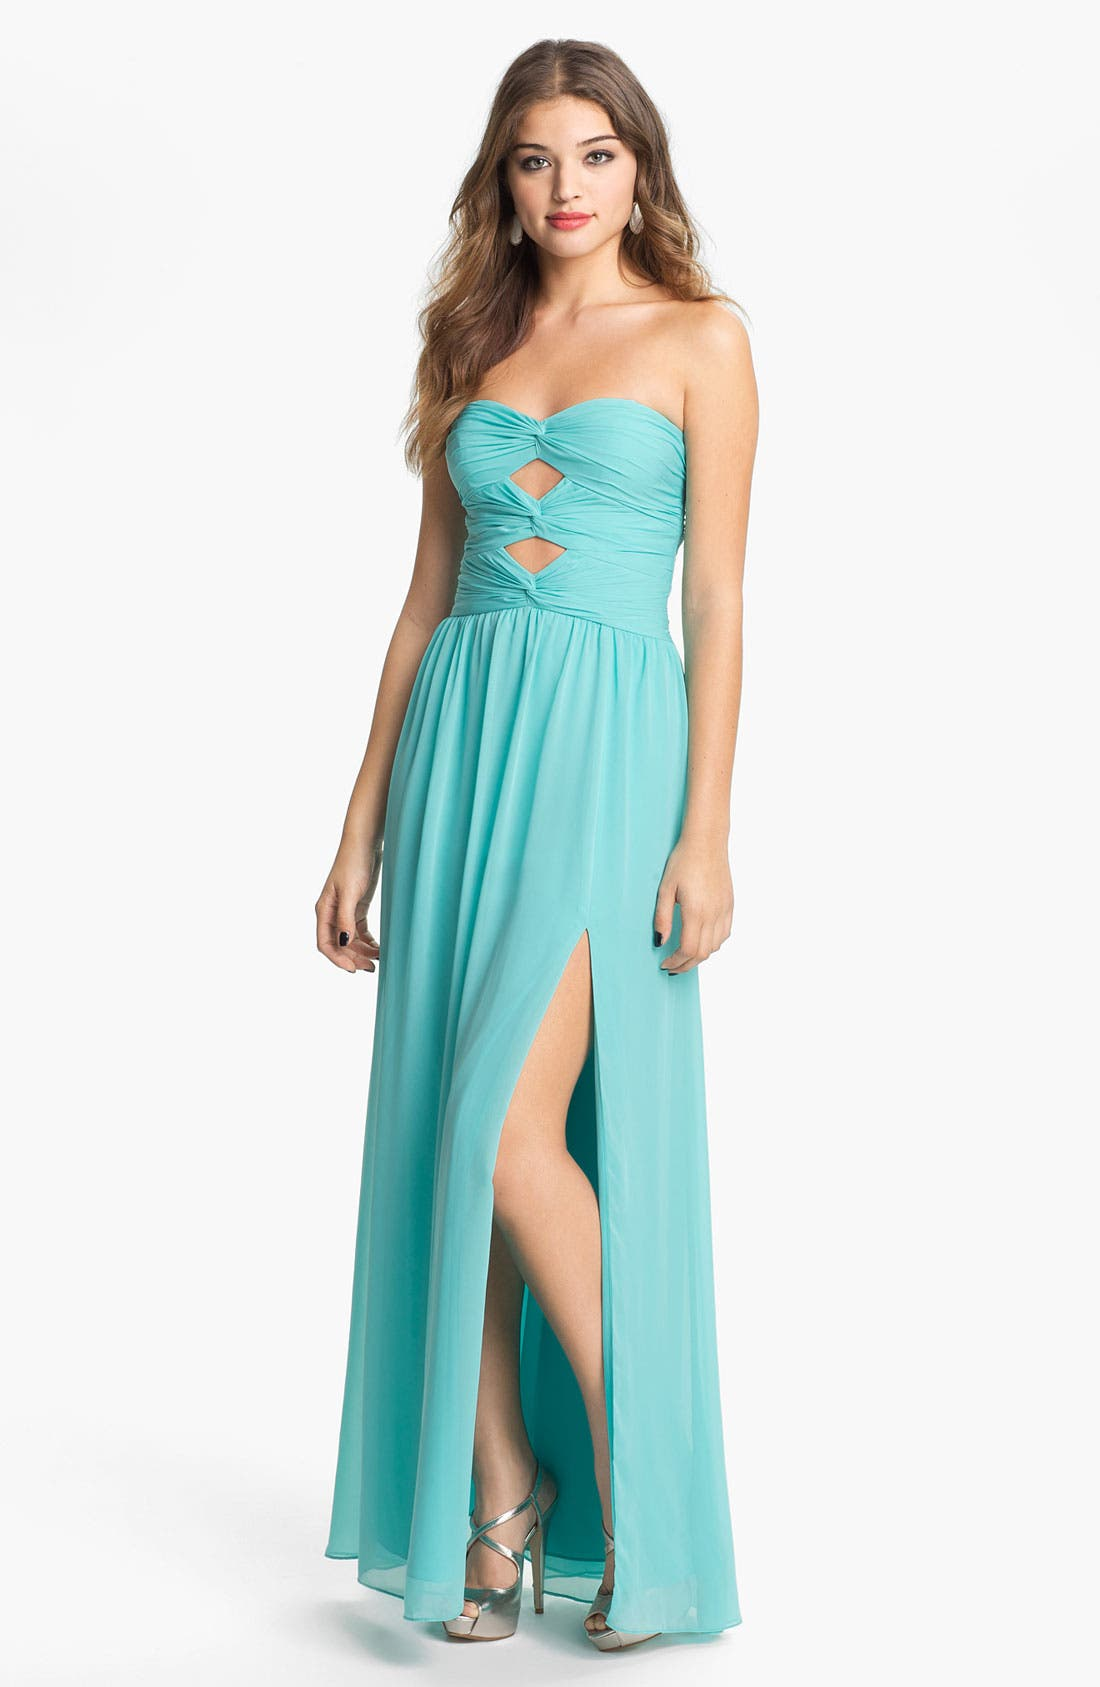 Main Image - Hailey by Adrianna Papell Cutout Detail Twist Mesh Gown